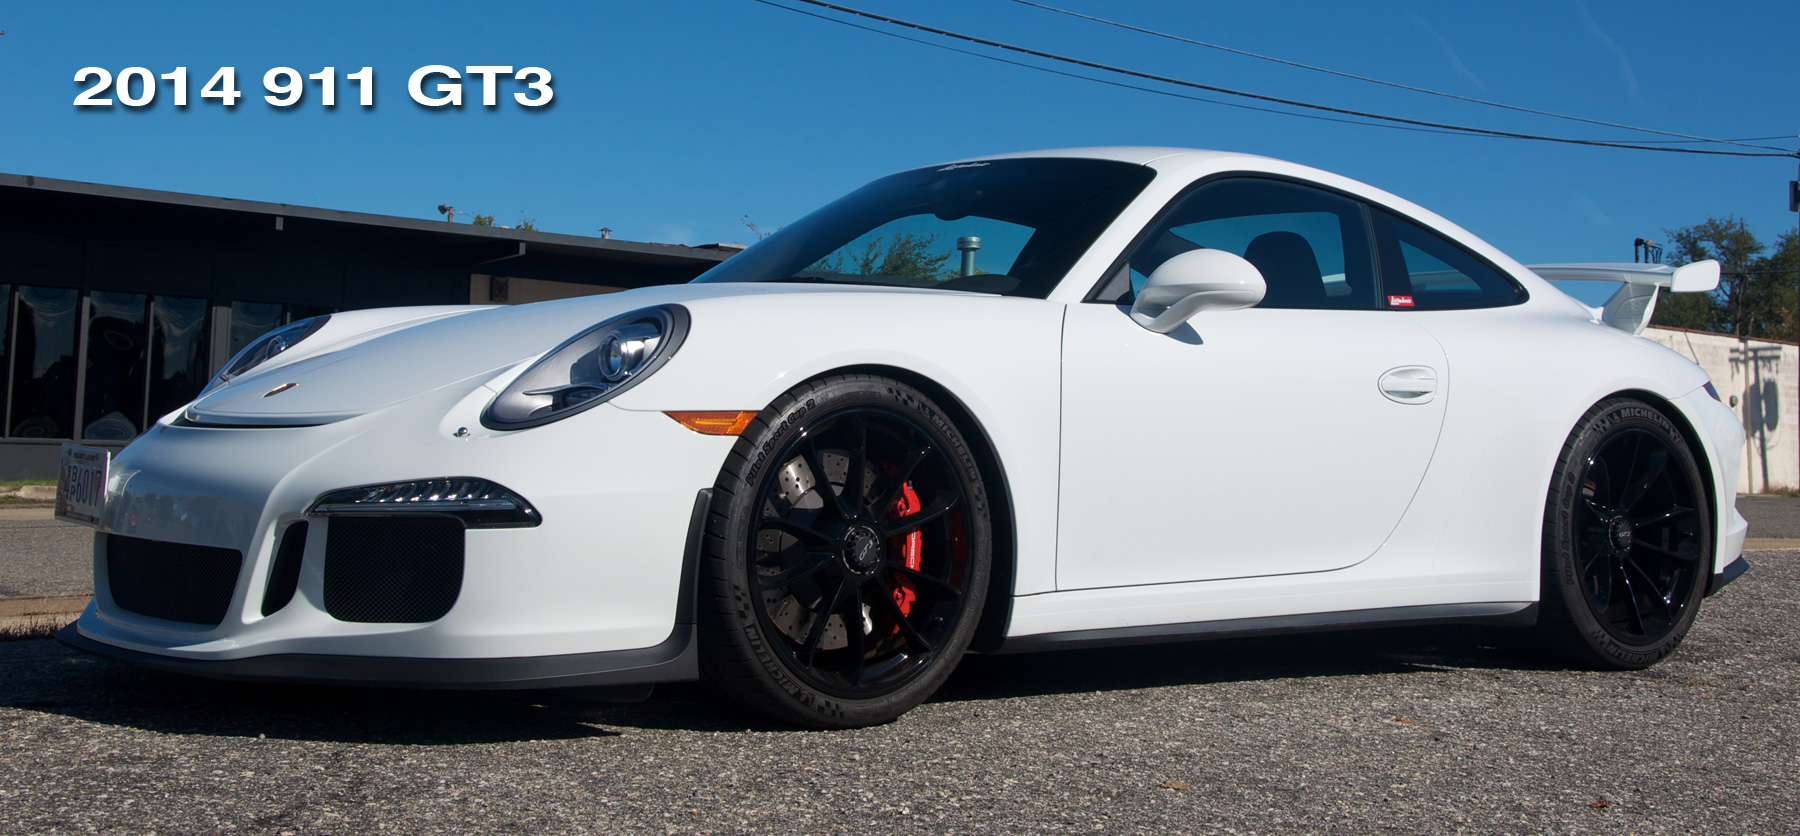 Header image for the 991 GT3 project showing the car from a low angle.